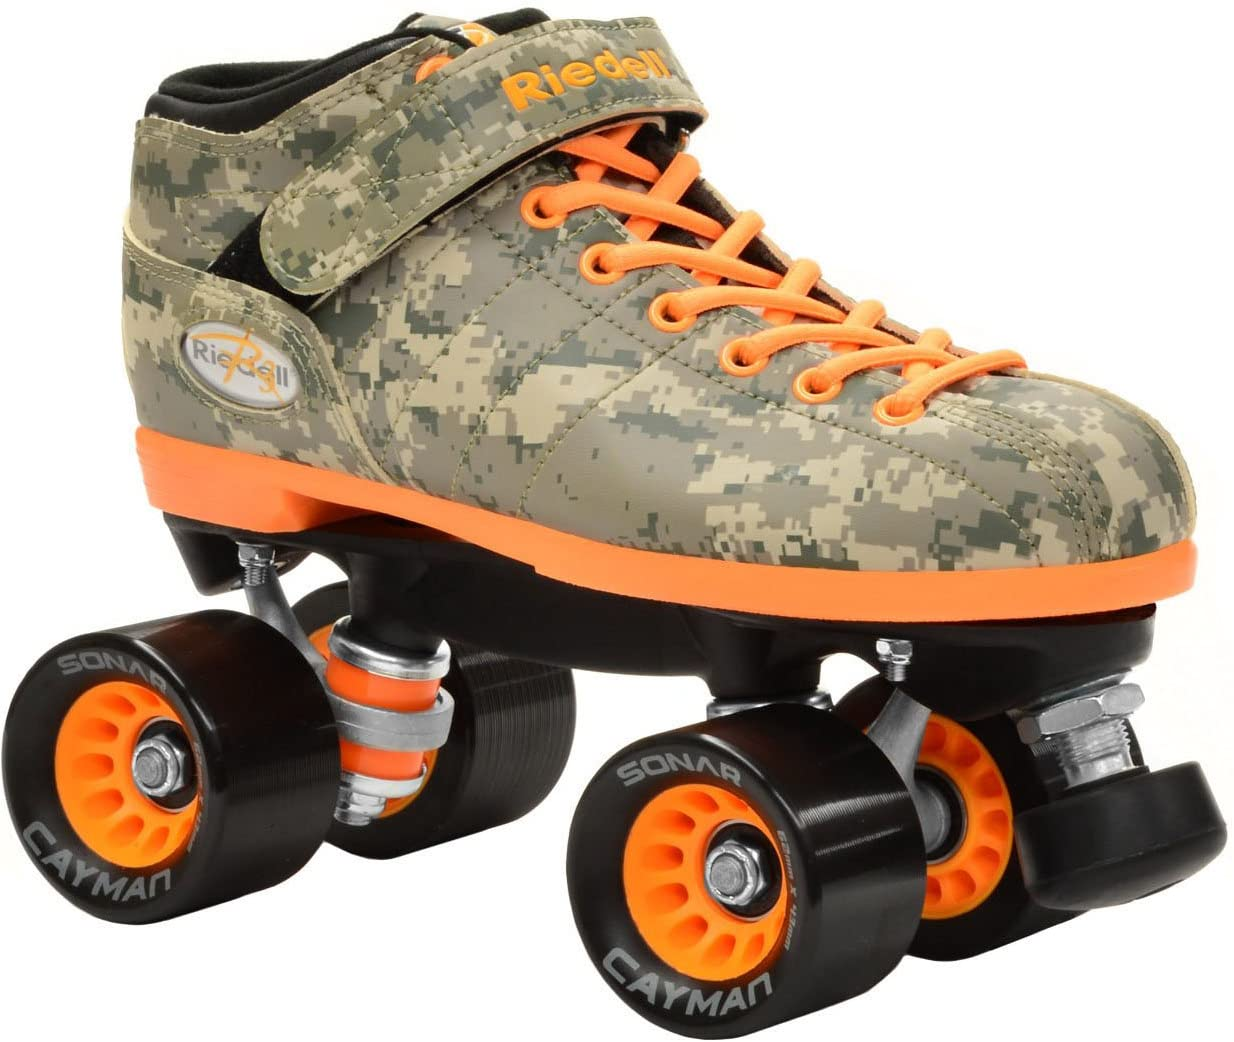 Riedell New R3 Digital Camo Quad Roller Derby Speed Skates Kids 3